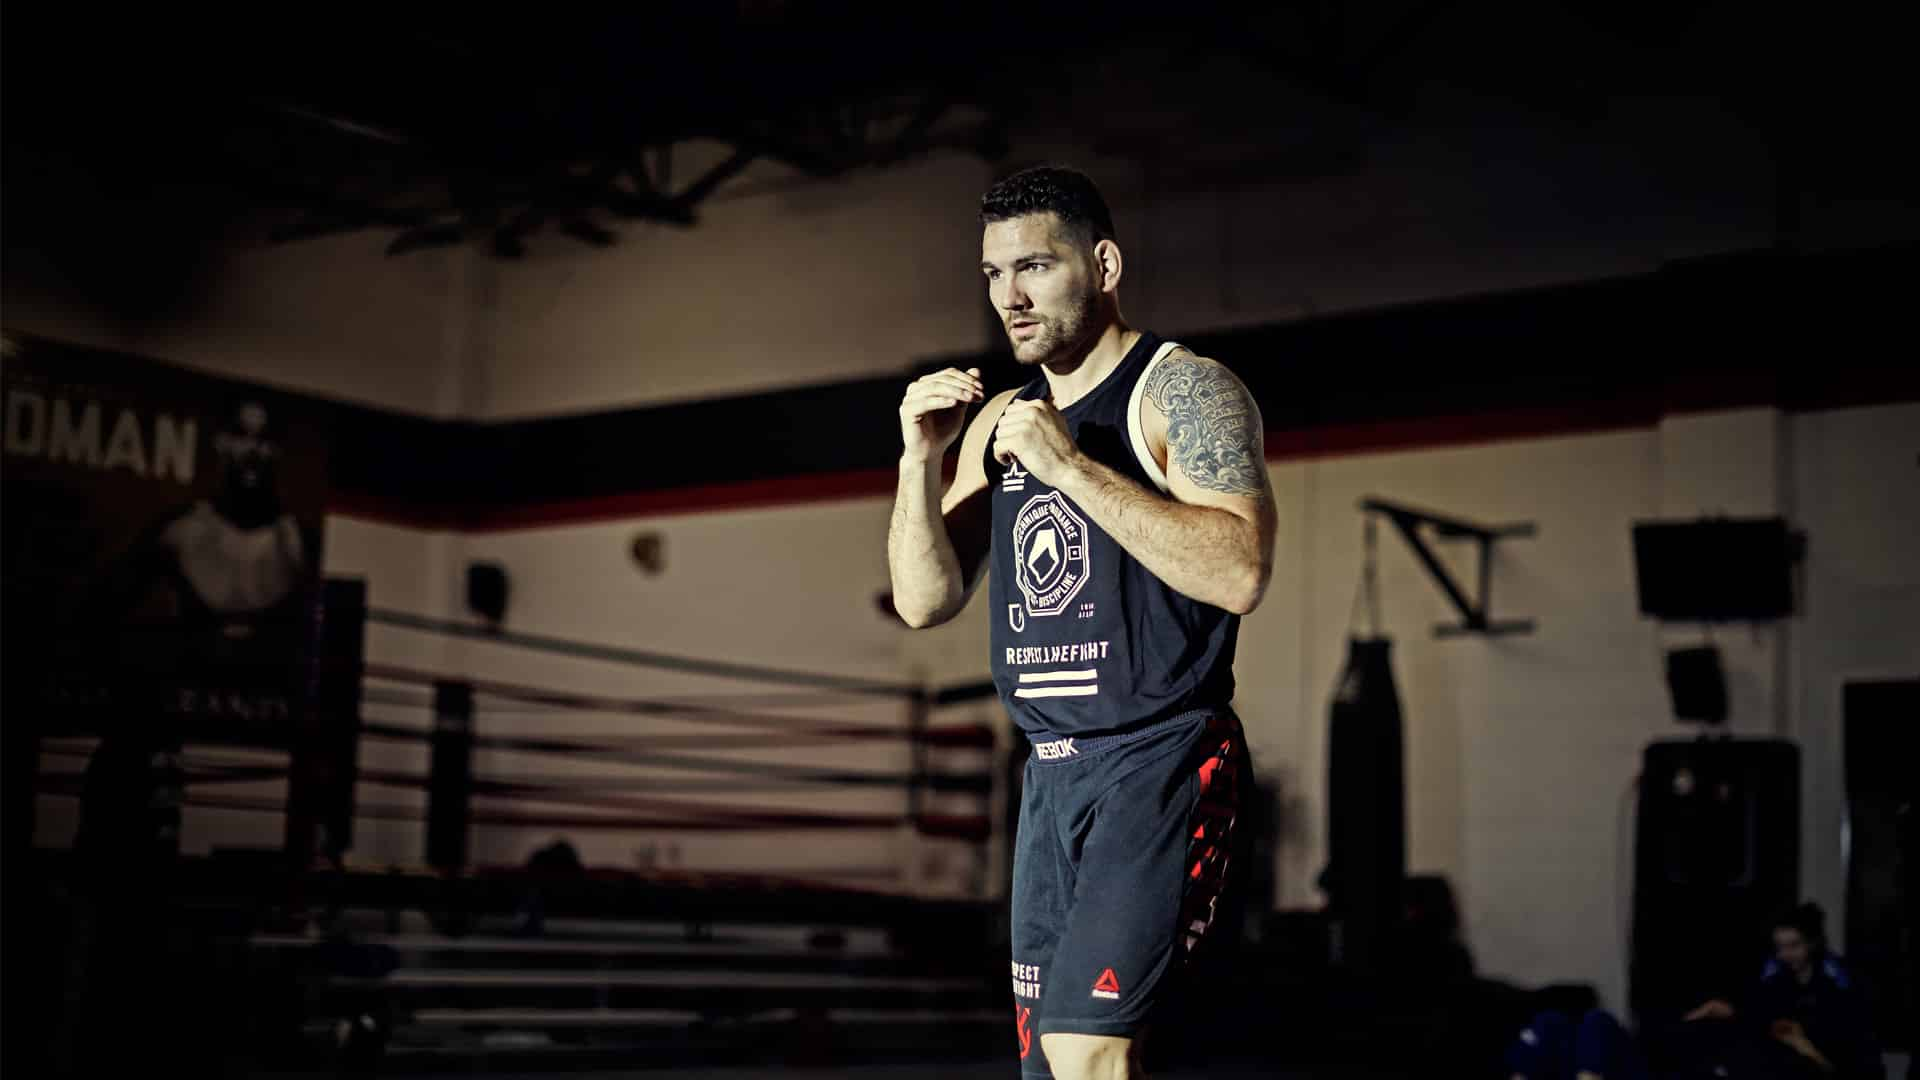 Chris Weidman Has Proven Himself As A Fighter, So Why The Excuses?